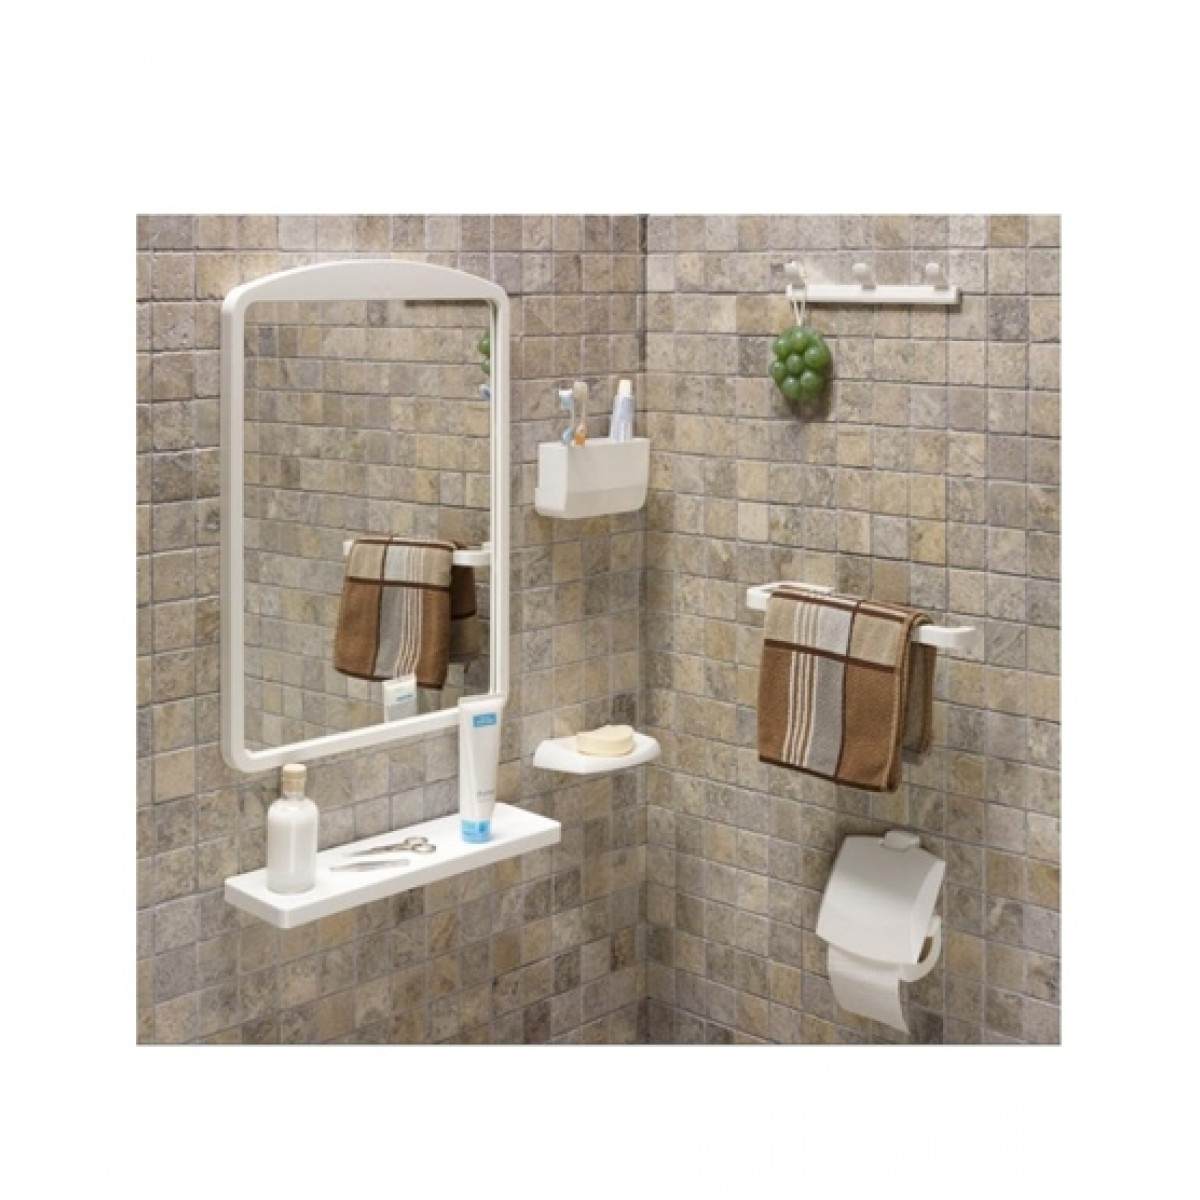 Primanova Bathroom Mirror Set 7 Pieces White (2801)